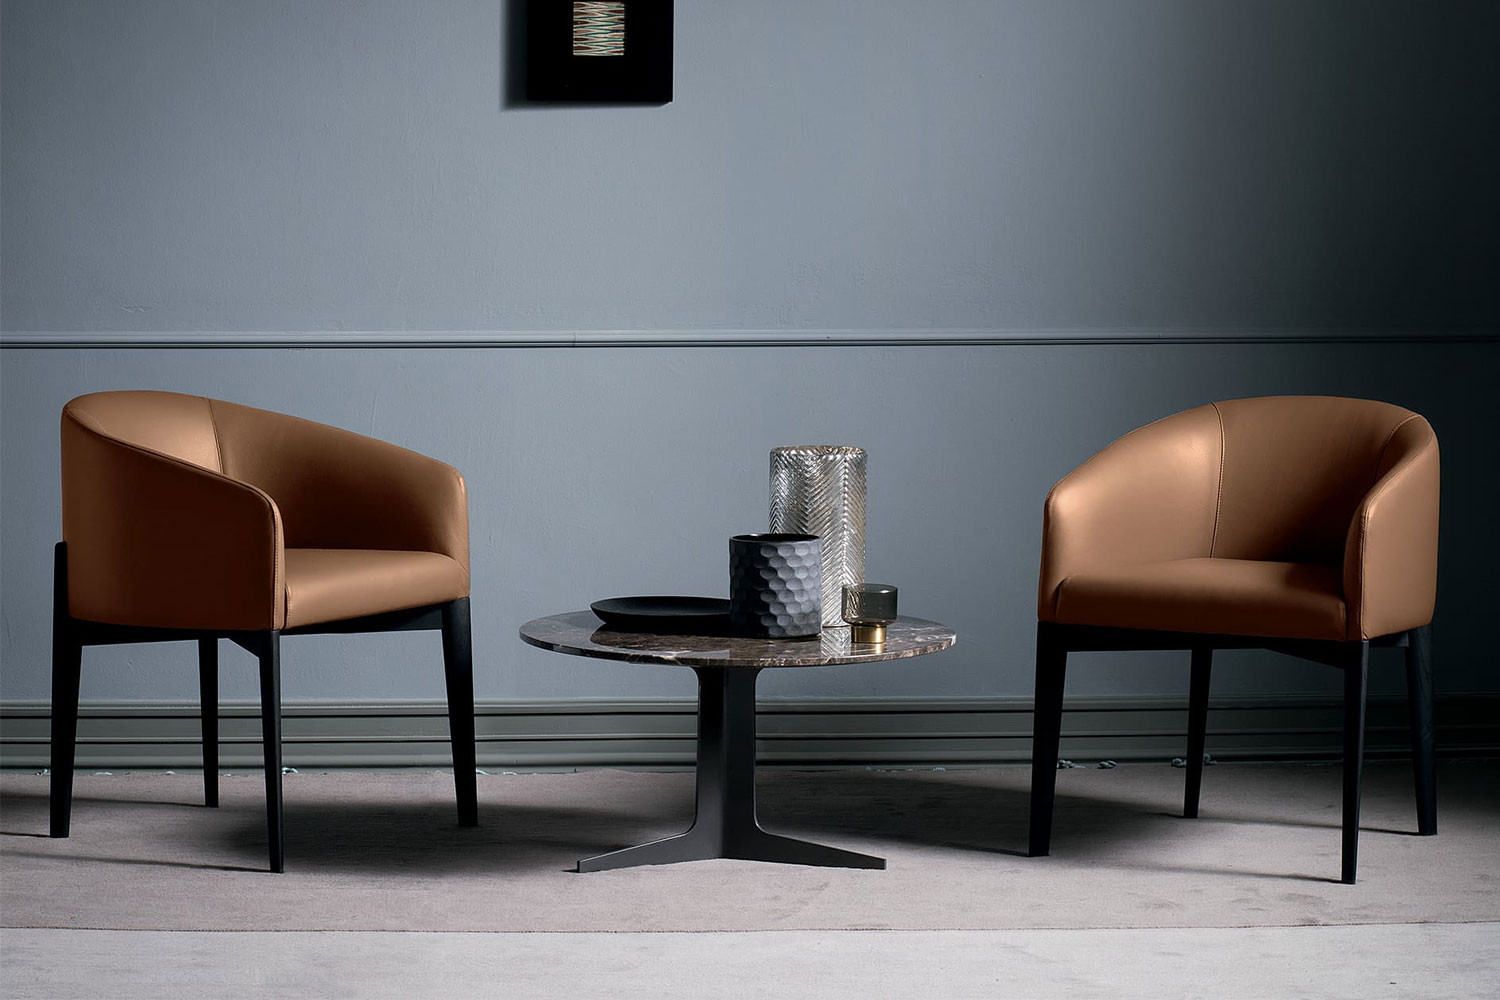 Modern tub dining chair with beautifully crafted black wood legs and an upholstered seat